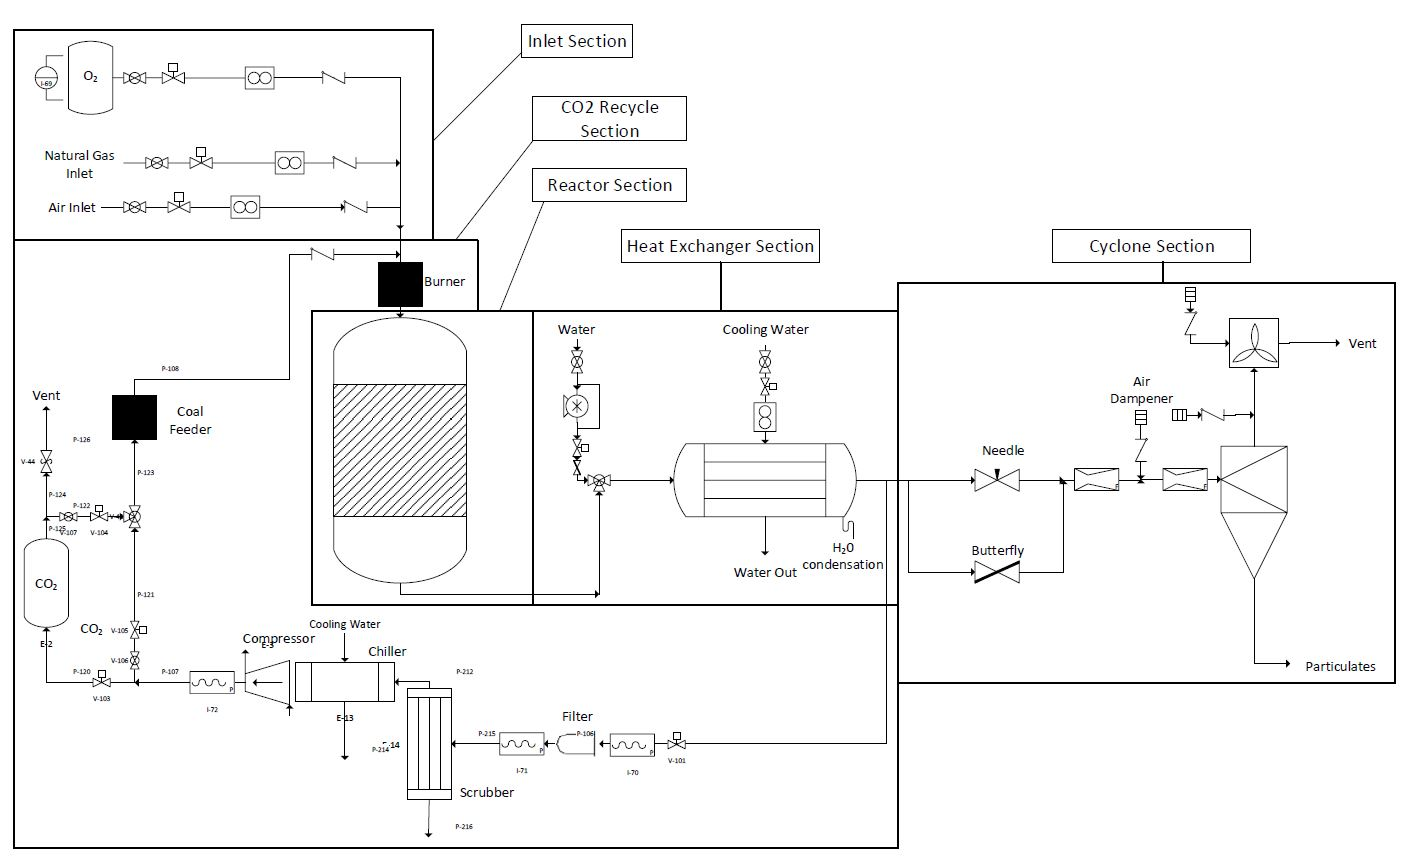 Development Of Automated Control Systems For Pilot Scale